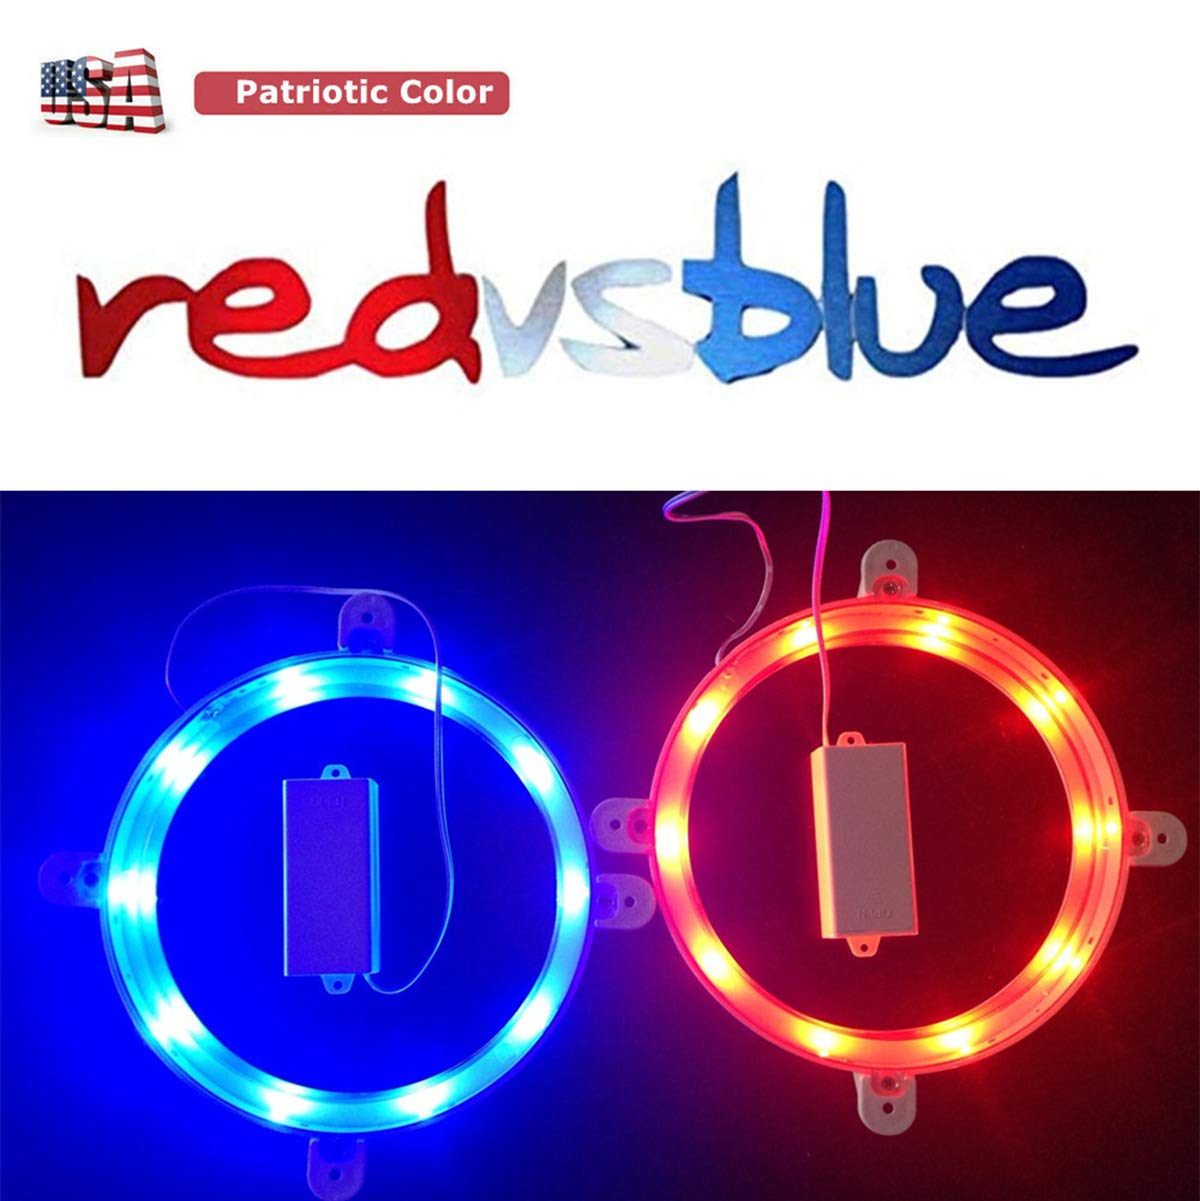 Cornhole Board Lights Set of 2, Waterproof LED Corn Hole Lights for Standard 6'' Boards Ring, Weather Resistant, Long Lasting, Enjoy Your Tailgates Backyard Lawn Toss Game, Patriotic Color Blue & Red